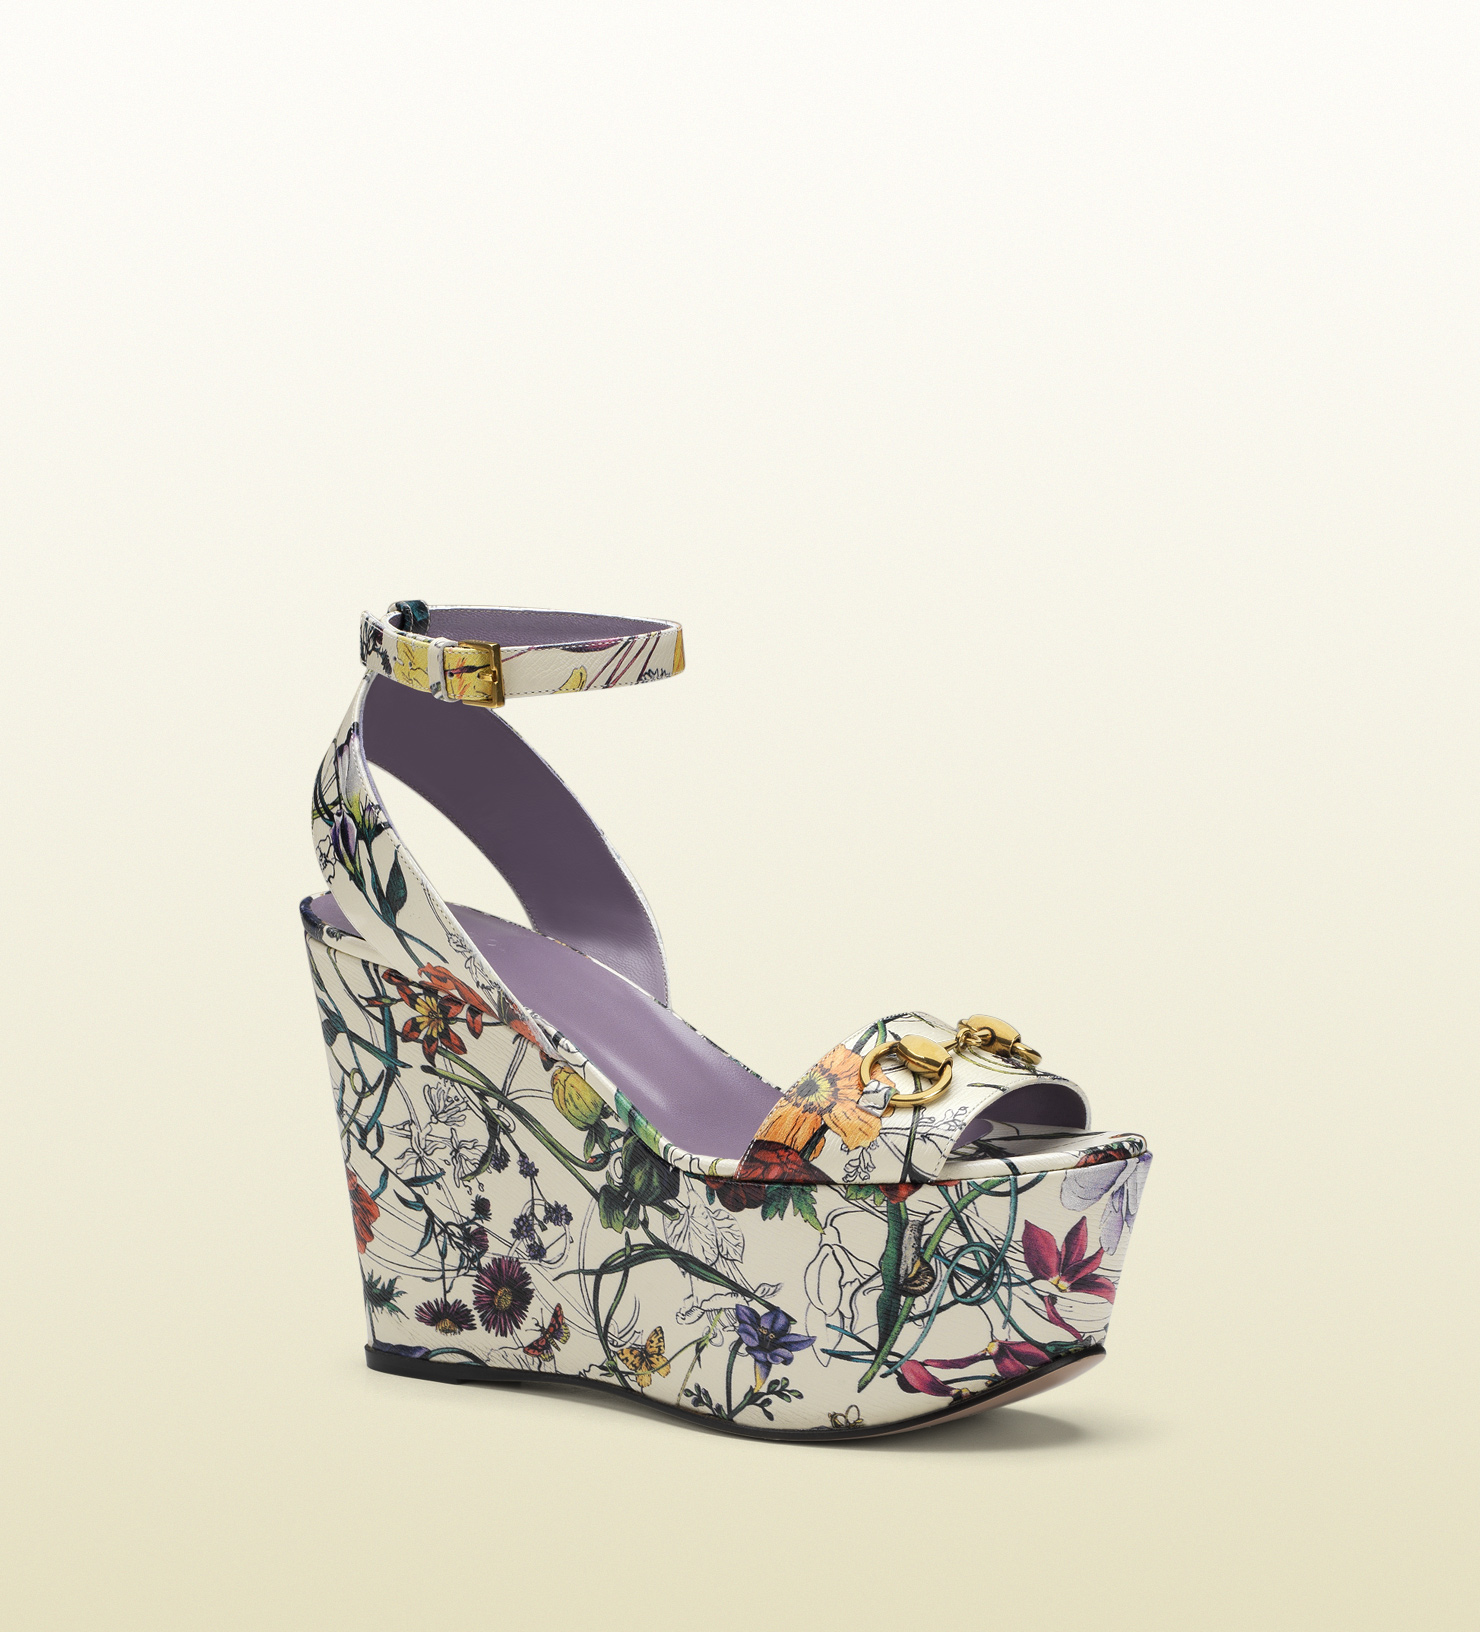 47b700a3360 Lyst - Gucci Flora Leather Midheel Wedge Sandal